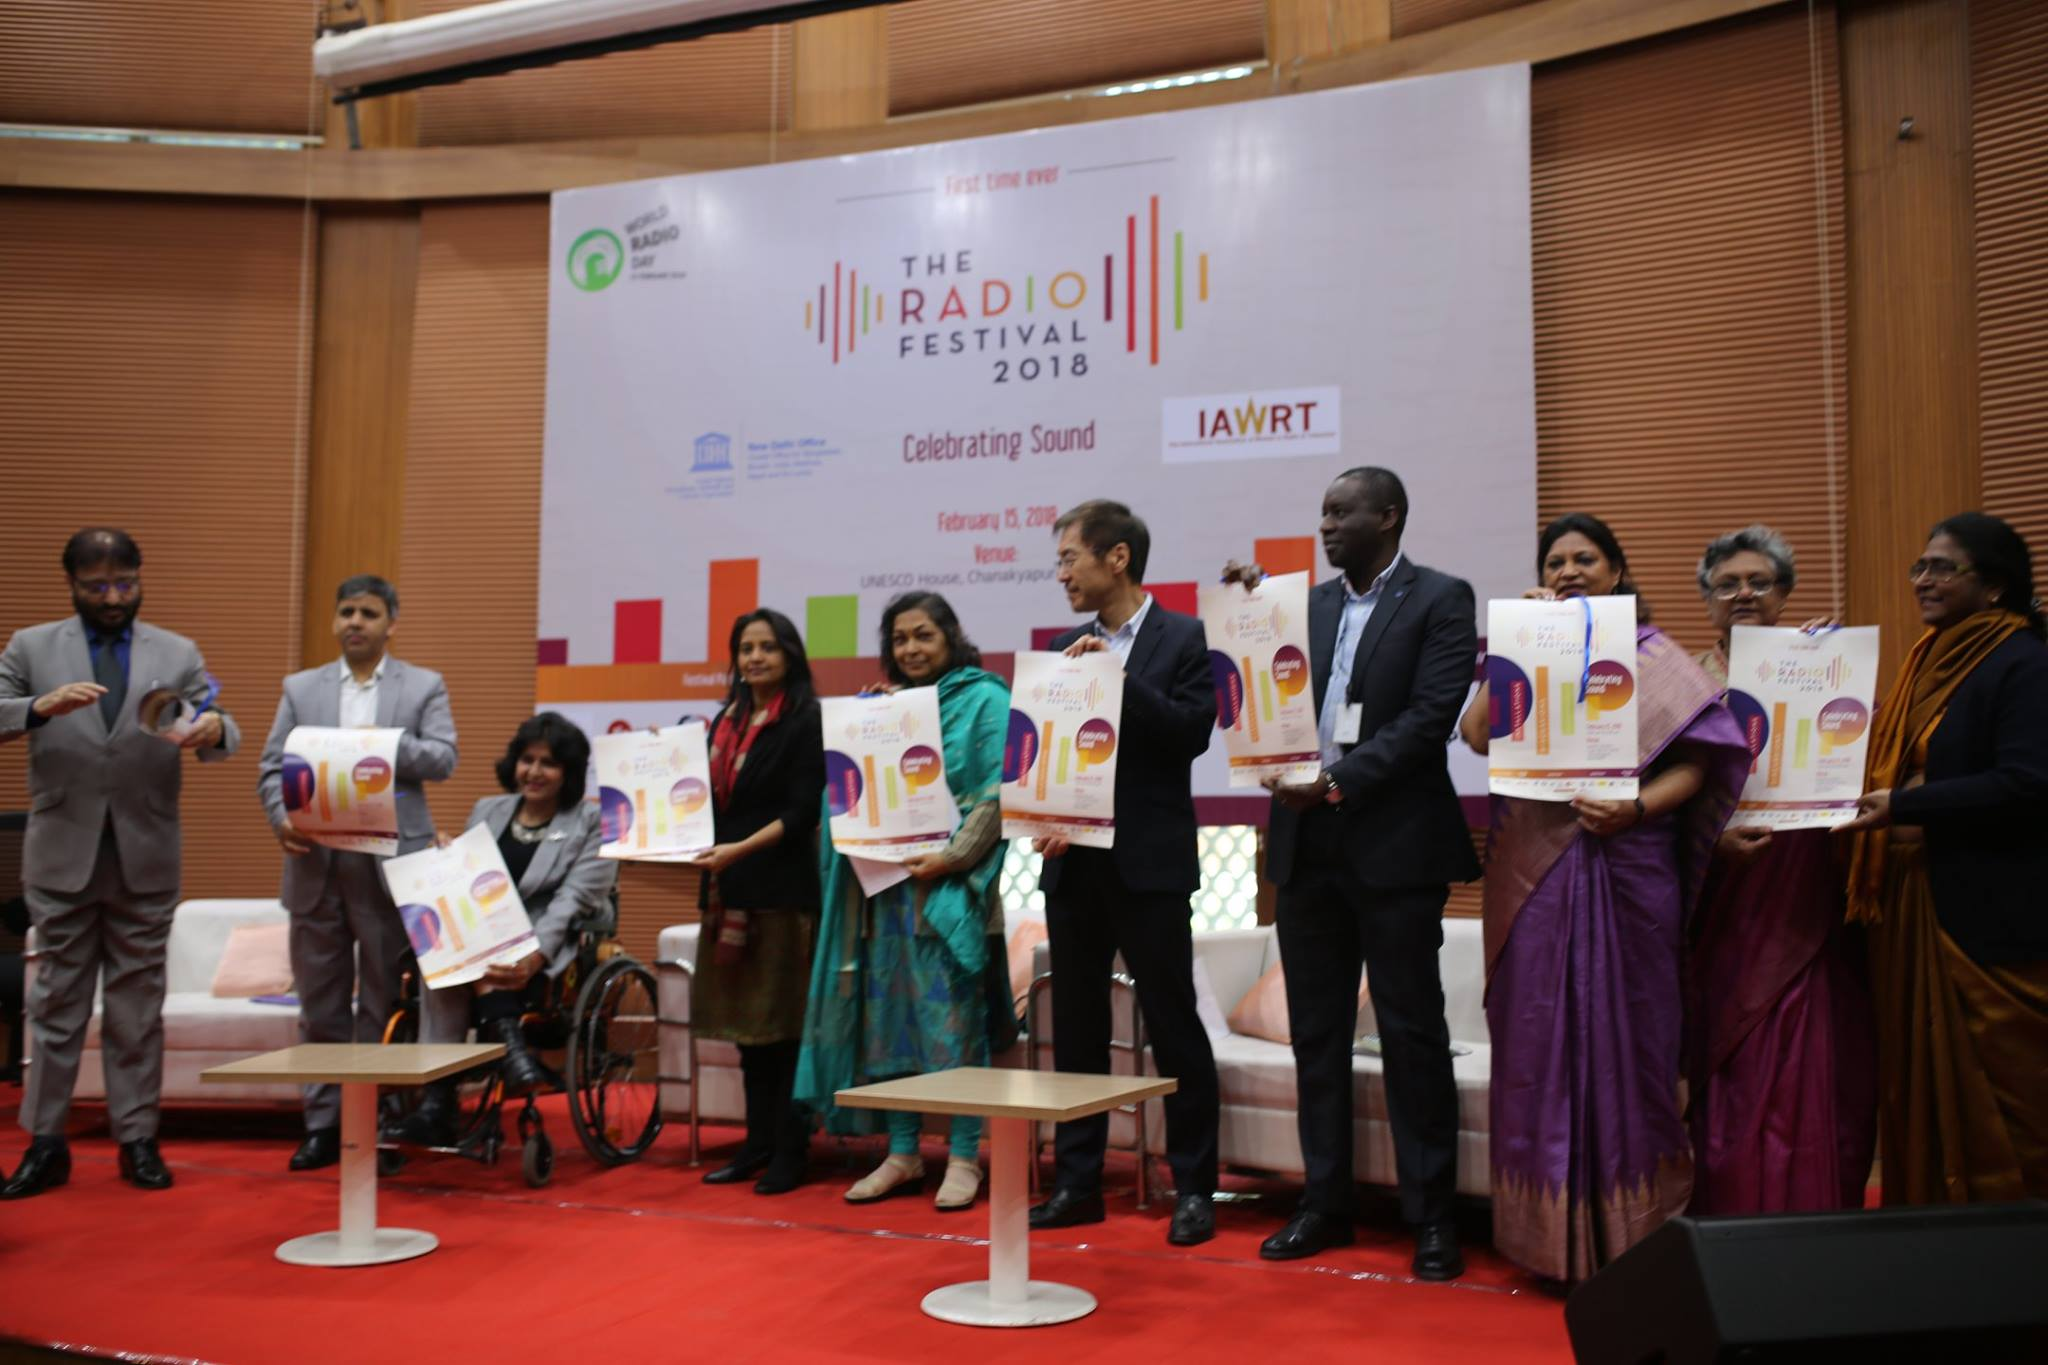 Sounds of Change – UNESCO India and IAWRT host 'The Radio Festival'